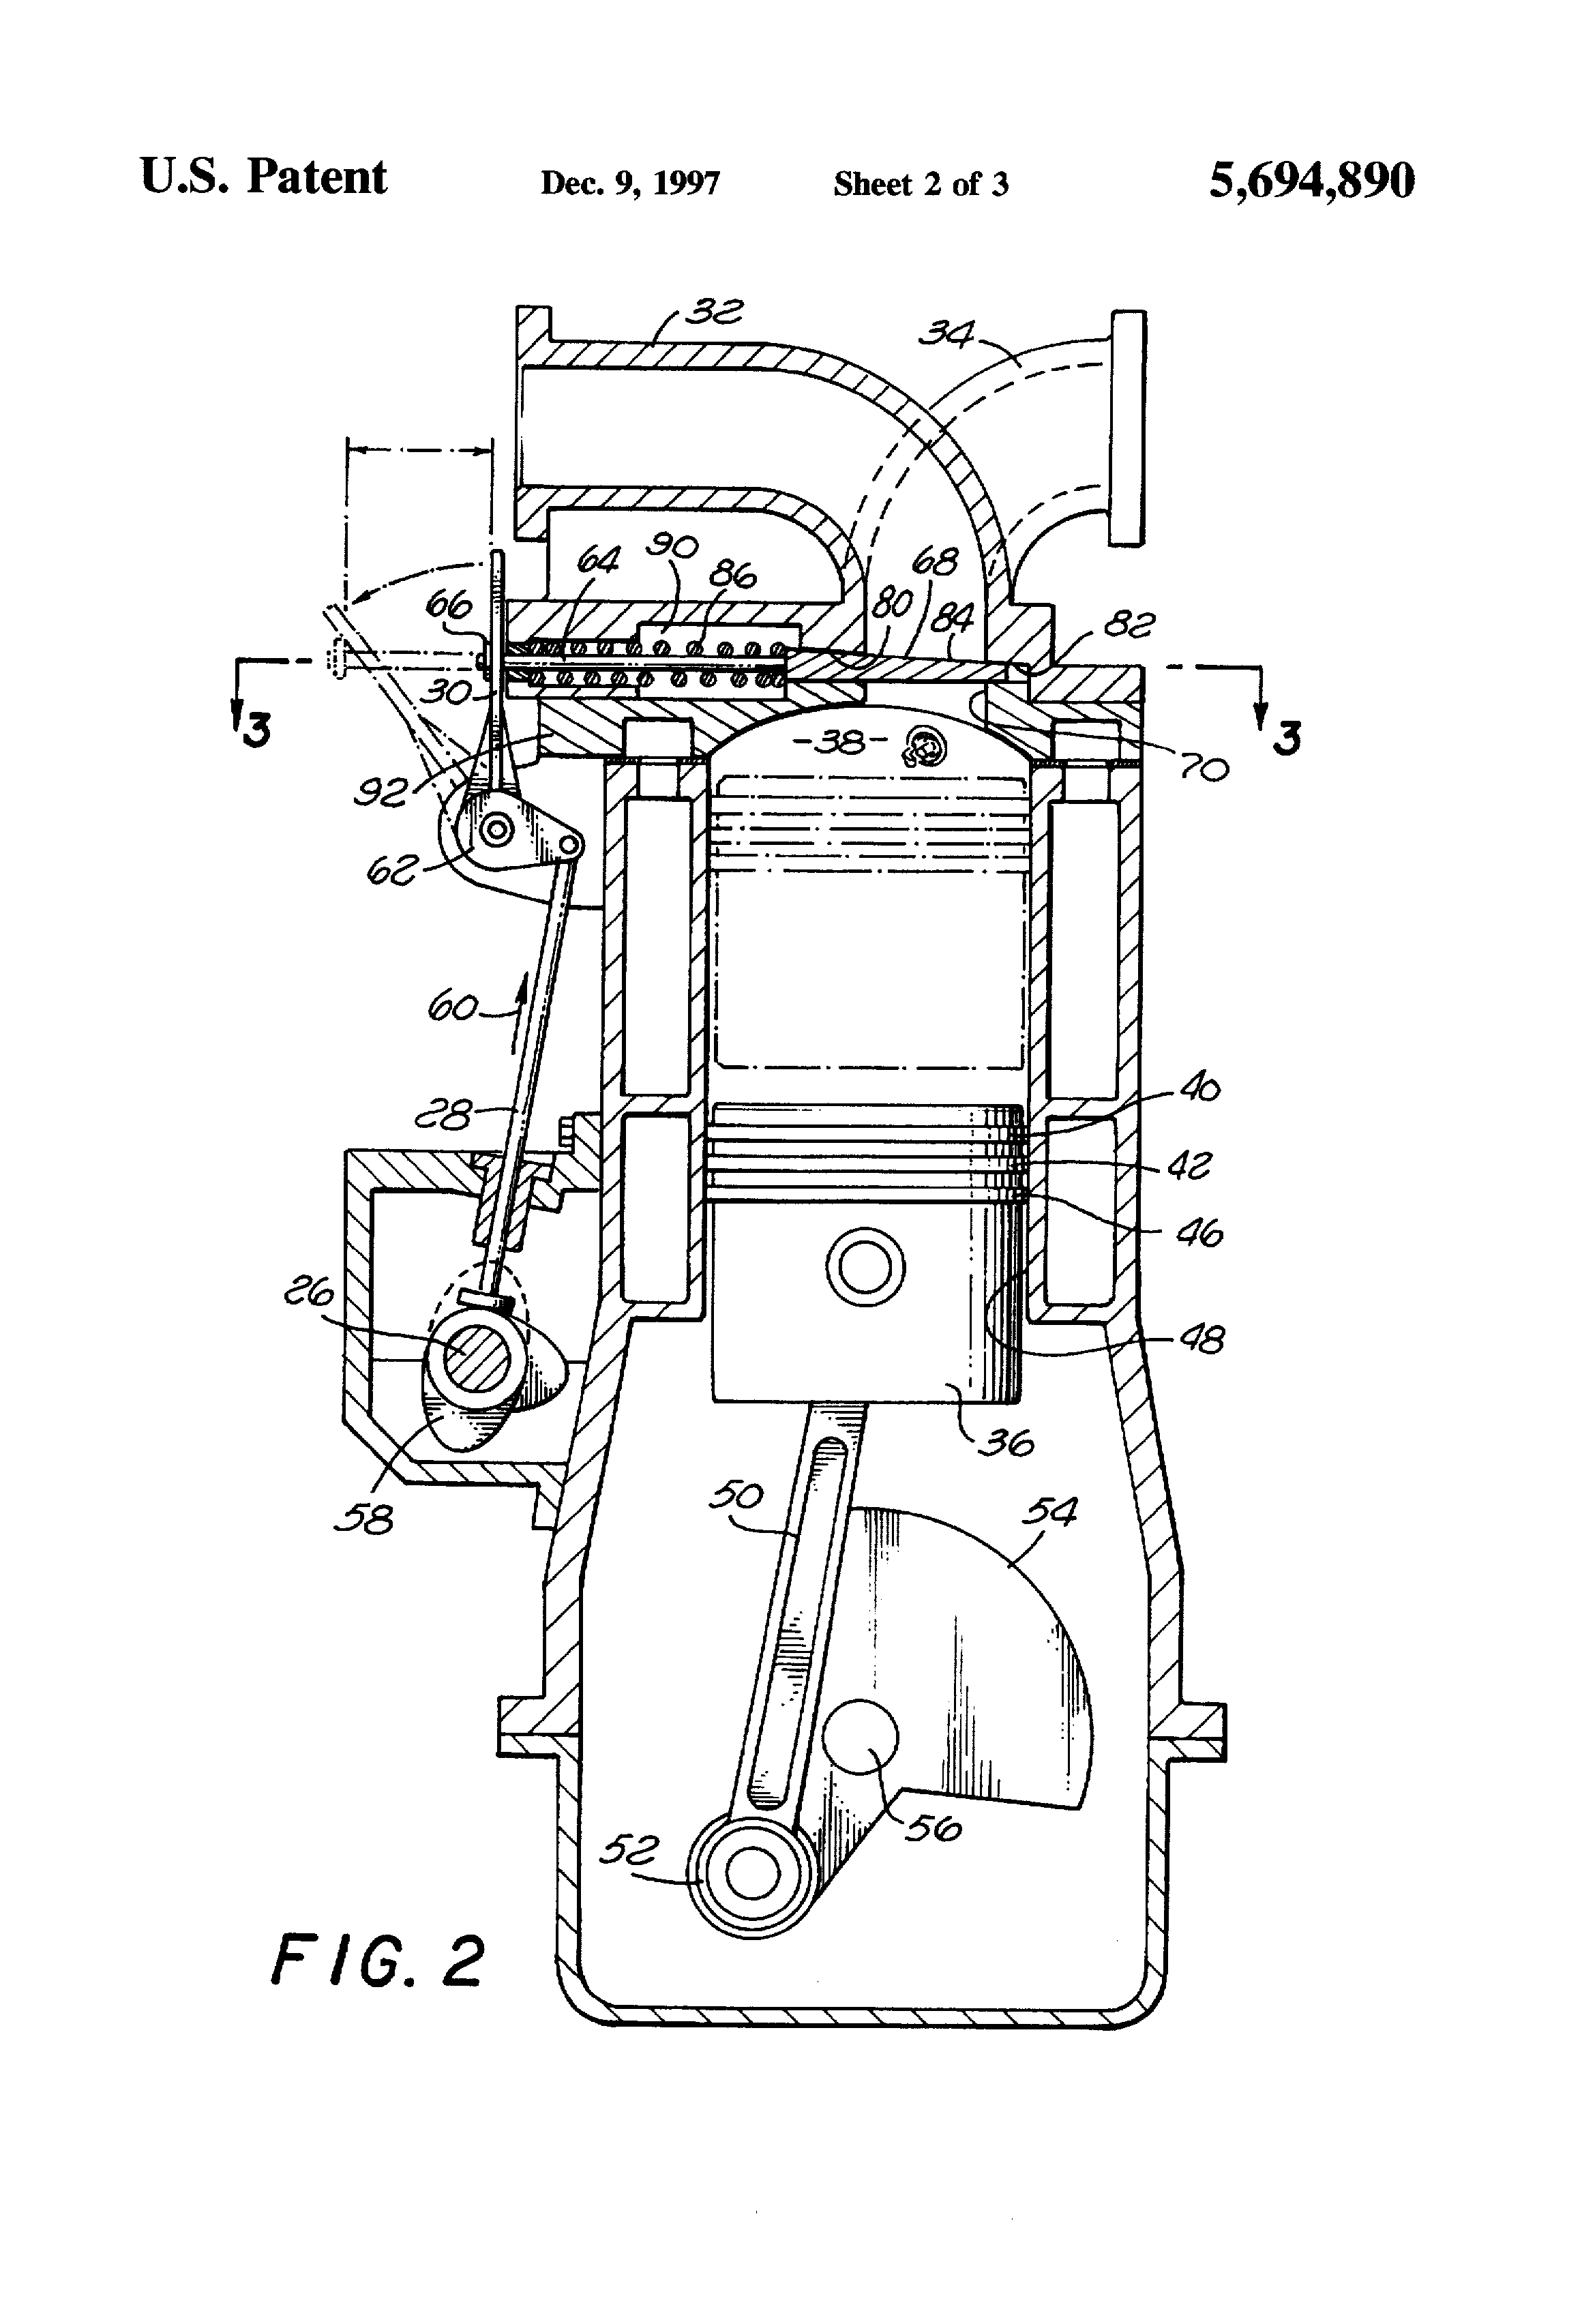 Patent Us5694890 Internal Combustion Engine With Sliding Valves Illustrated Diagram Of A Basic Drawing